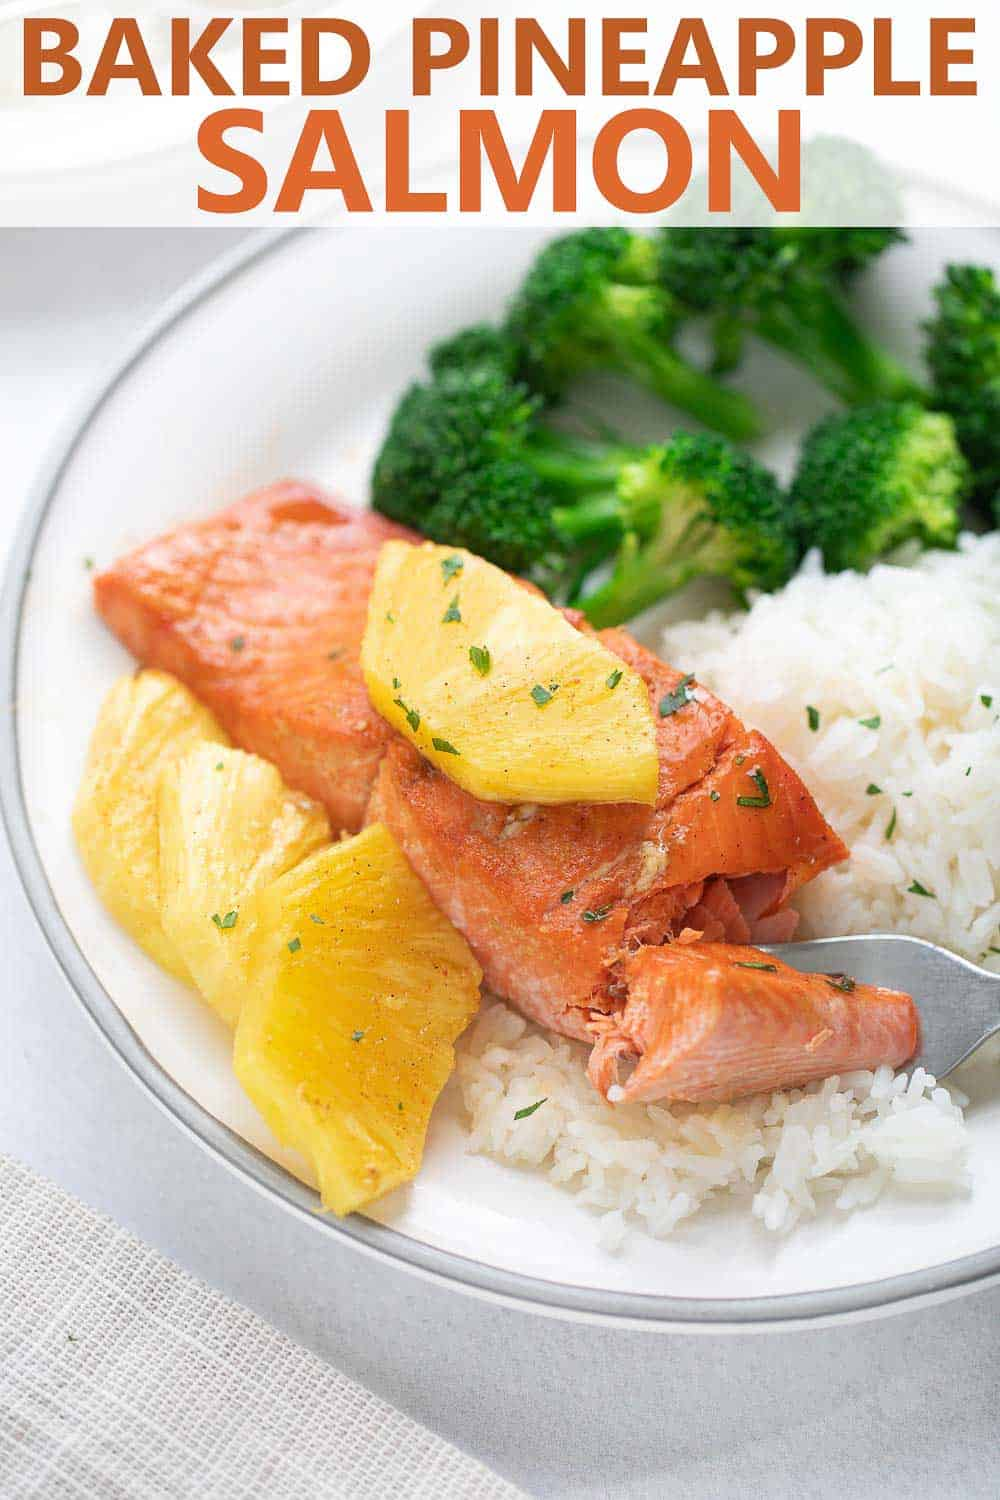 close up shot of baked salmon on white plate with pineapple and broccoli